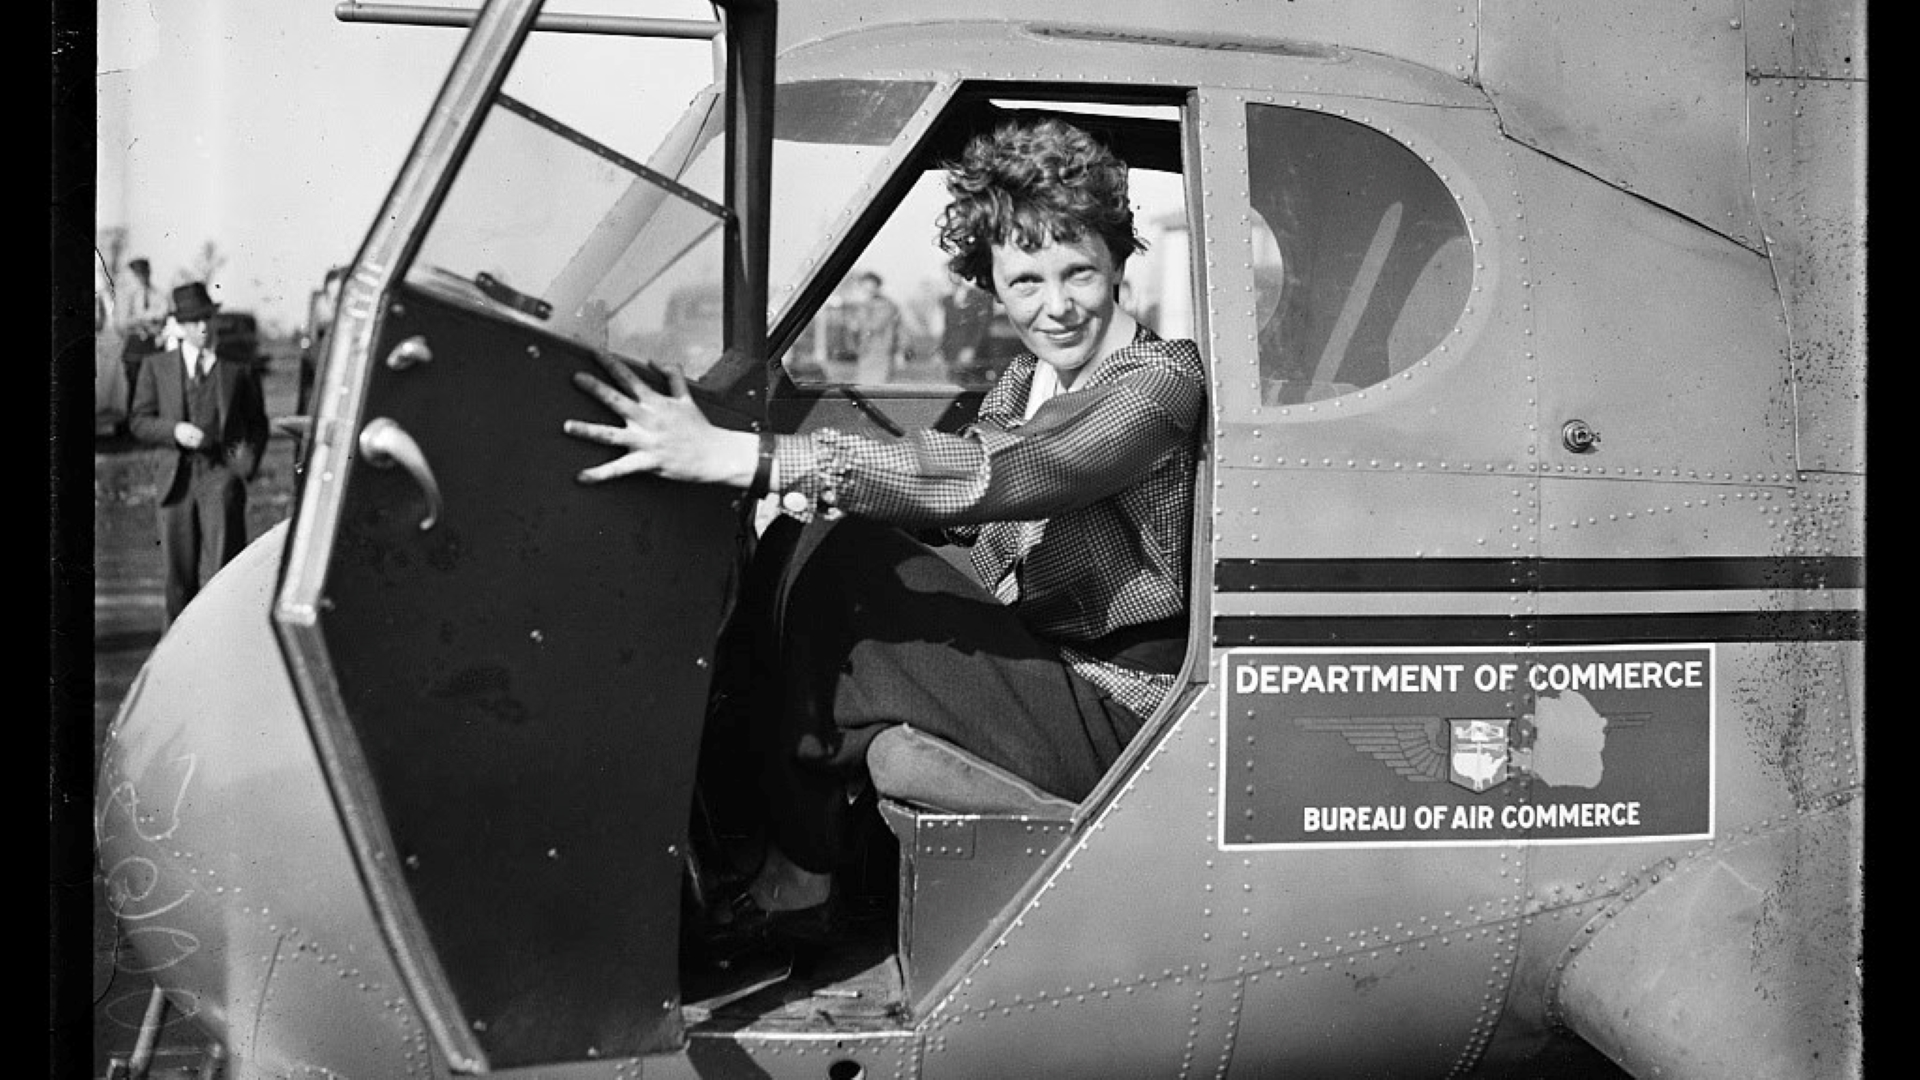 Amelia Earhart's Enduring Legacy: Women Who Dare to Soar